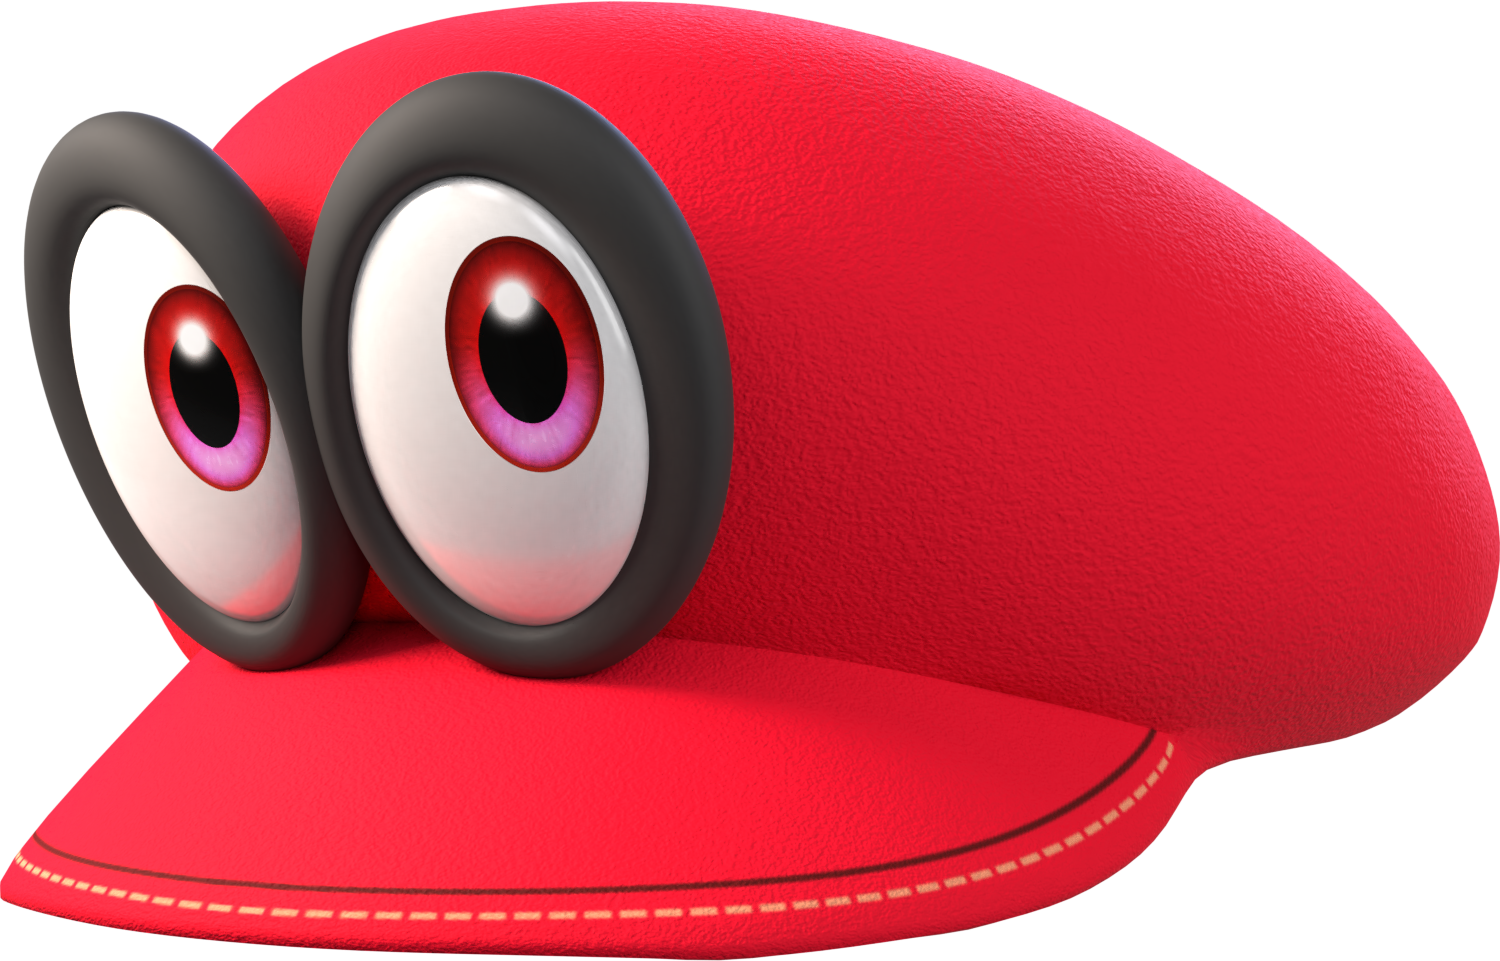 Cycles Cappy From Super Mario Odyssey By MaxiGamer On